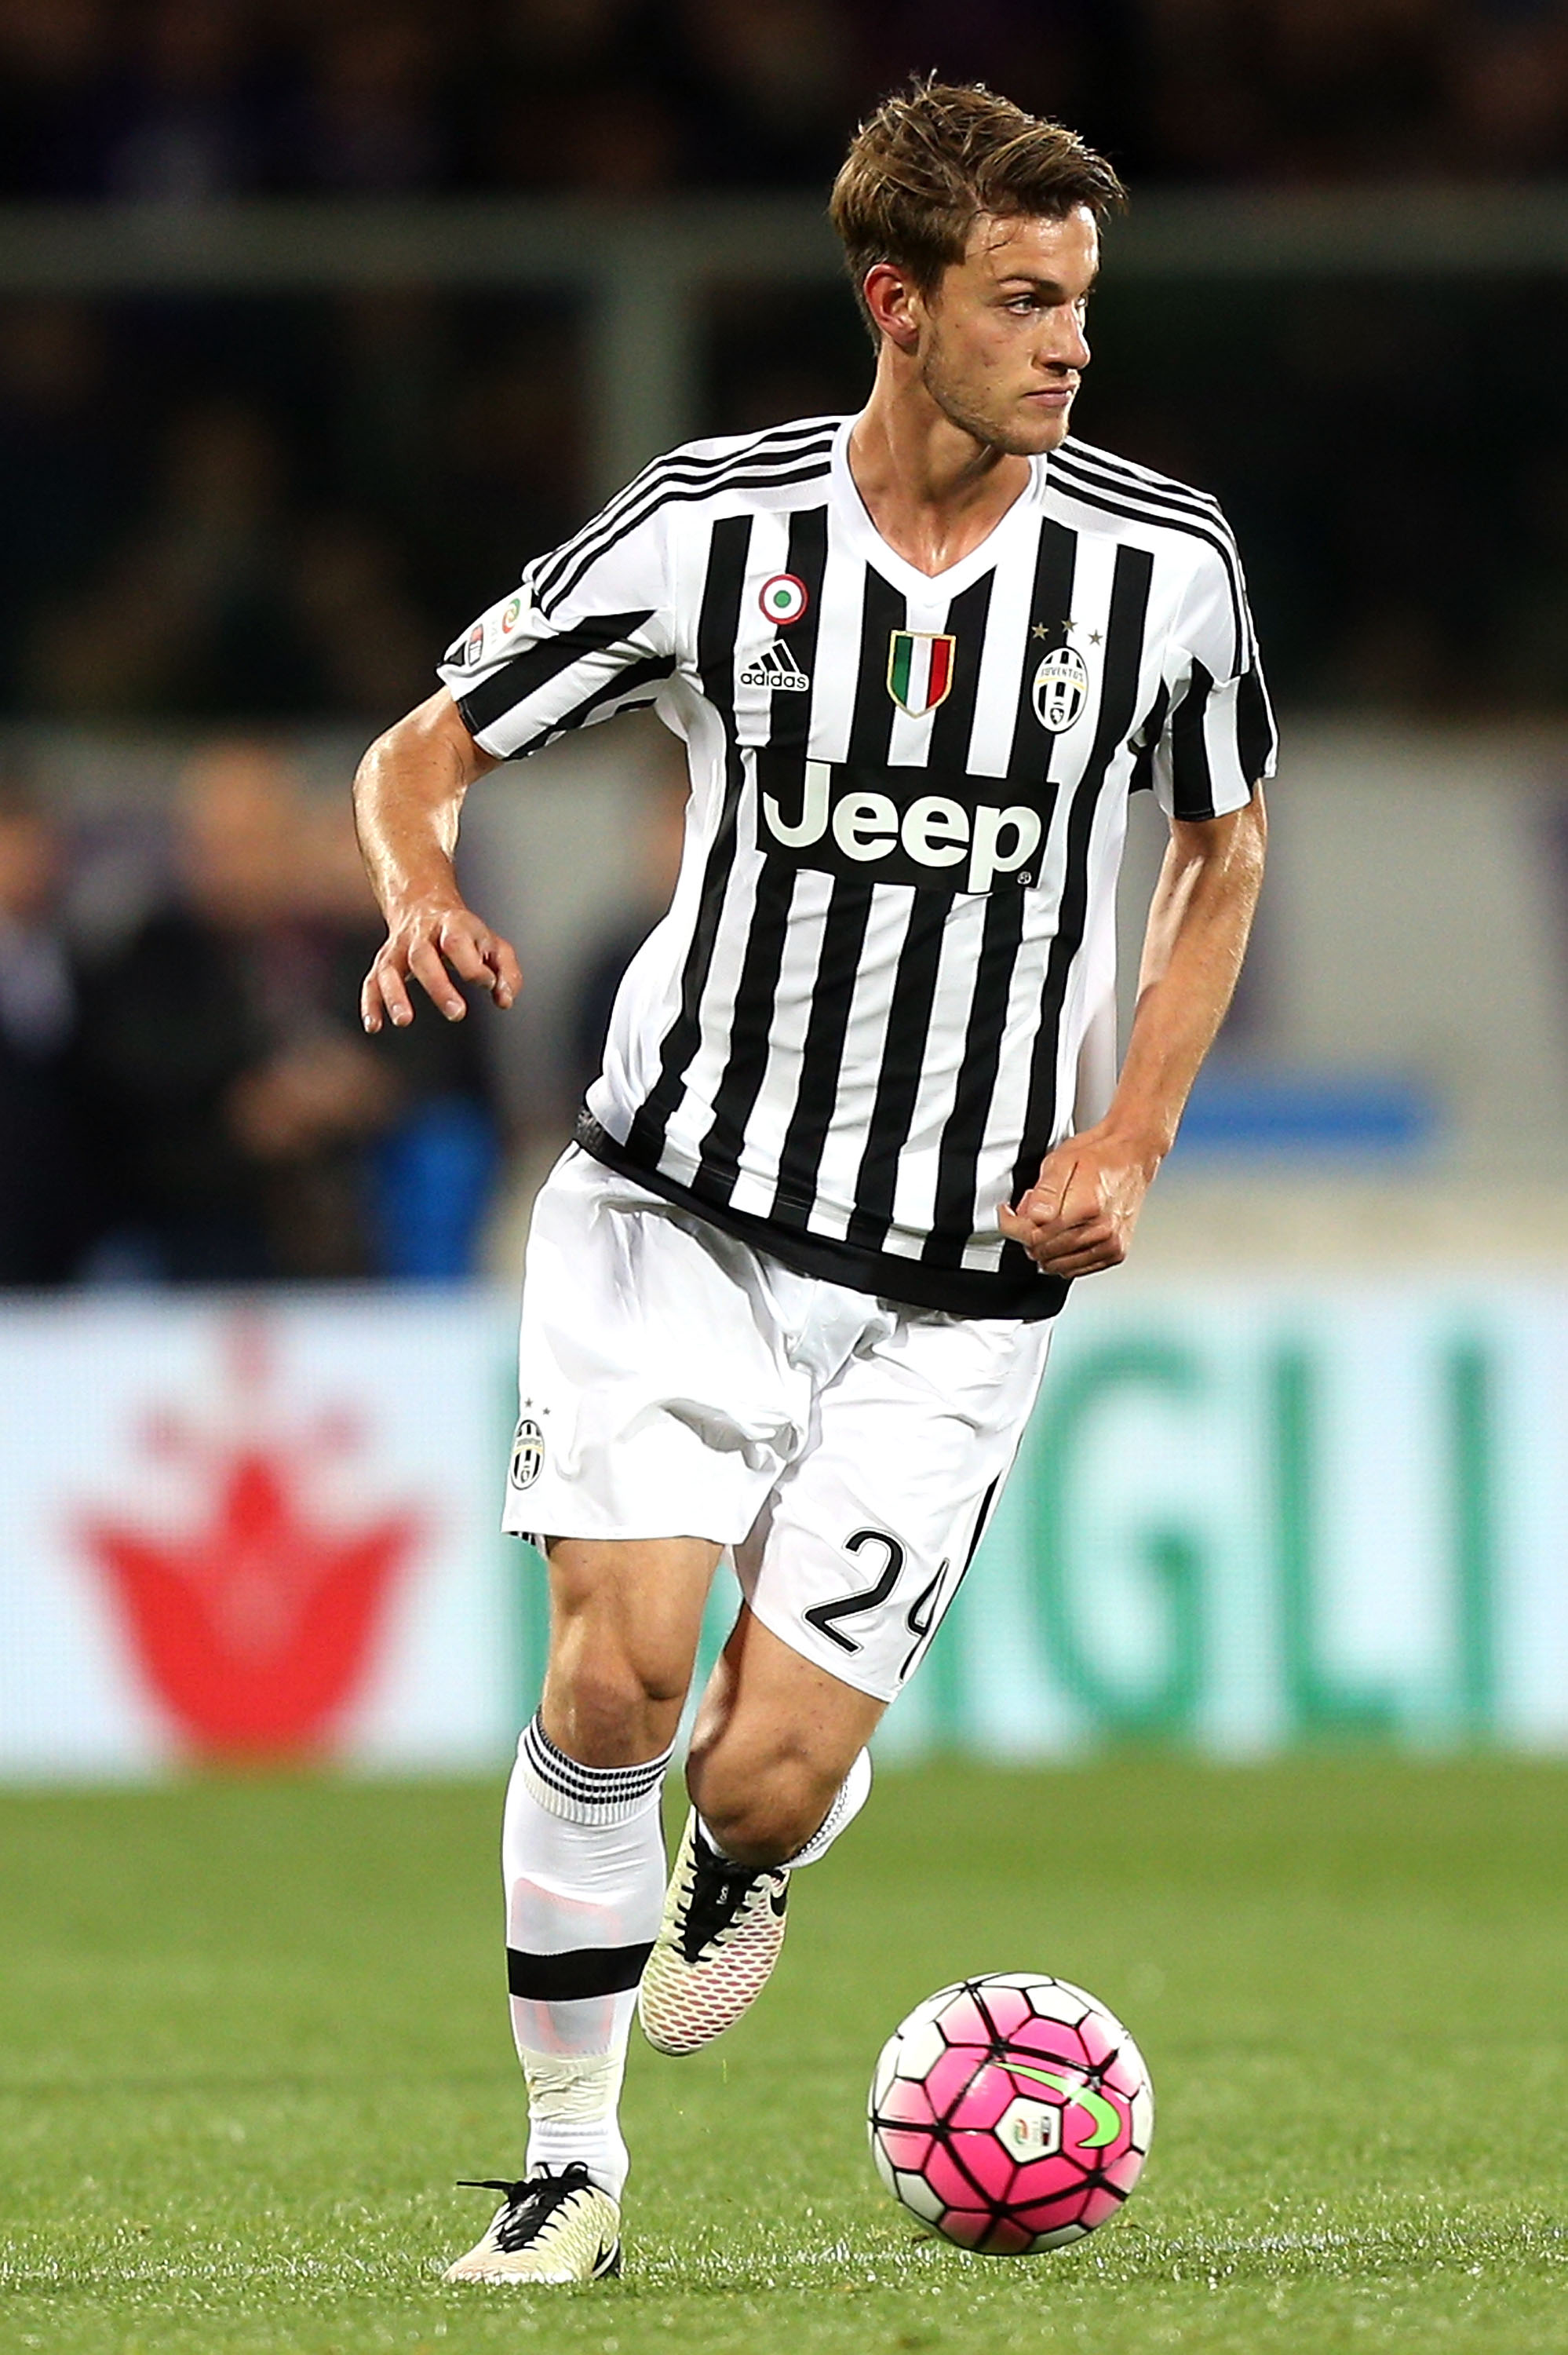 Rugani only made 17 appearances for Juventus last season